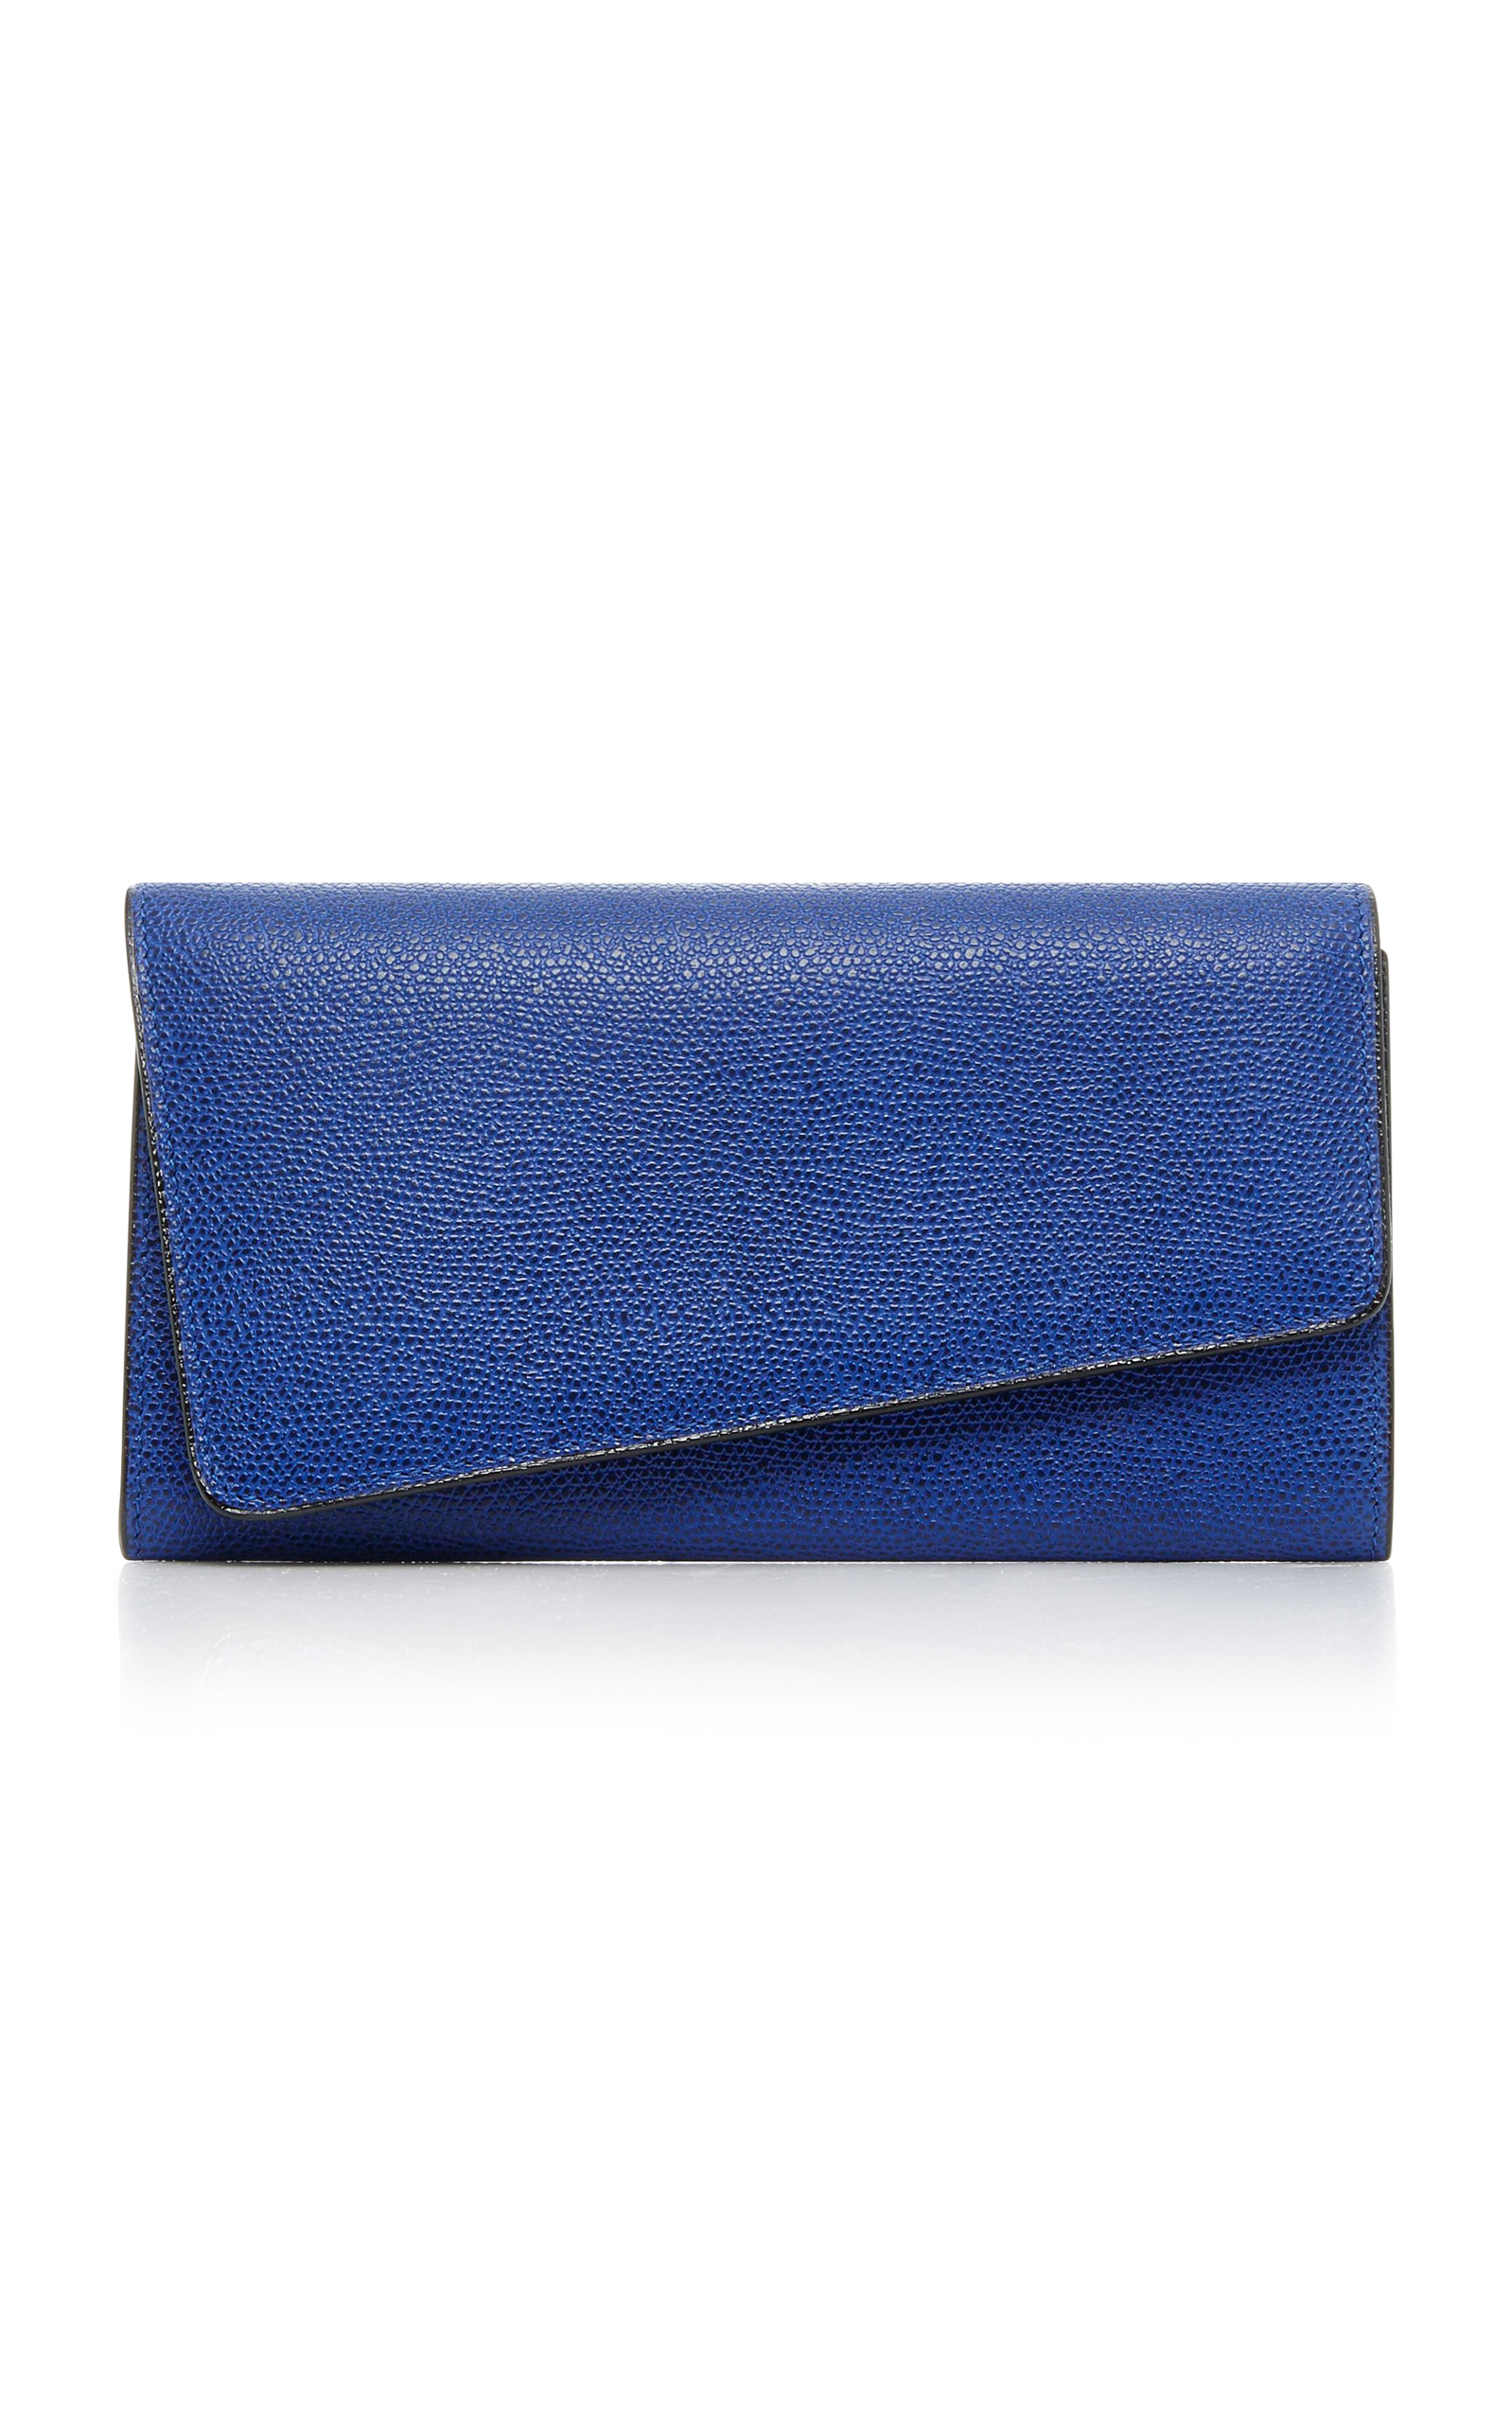 TWIST LEATHER PURSE